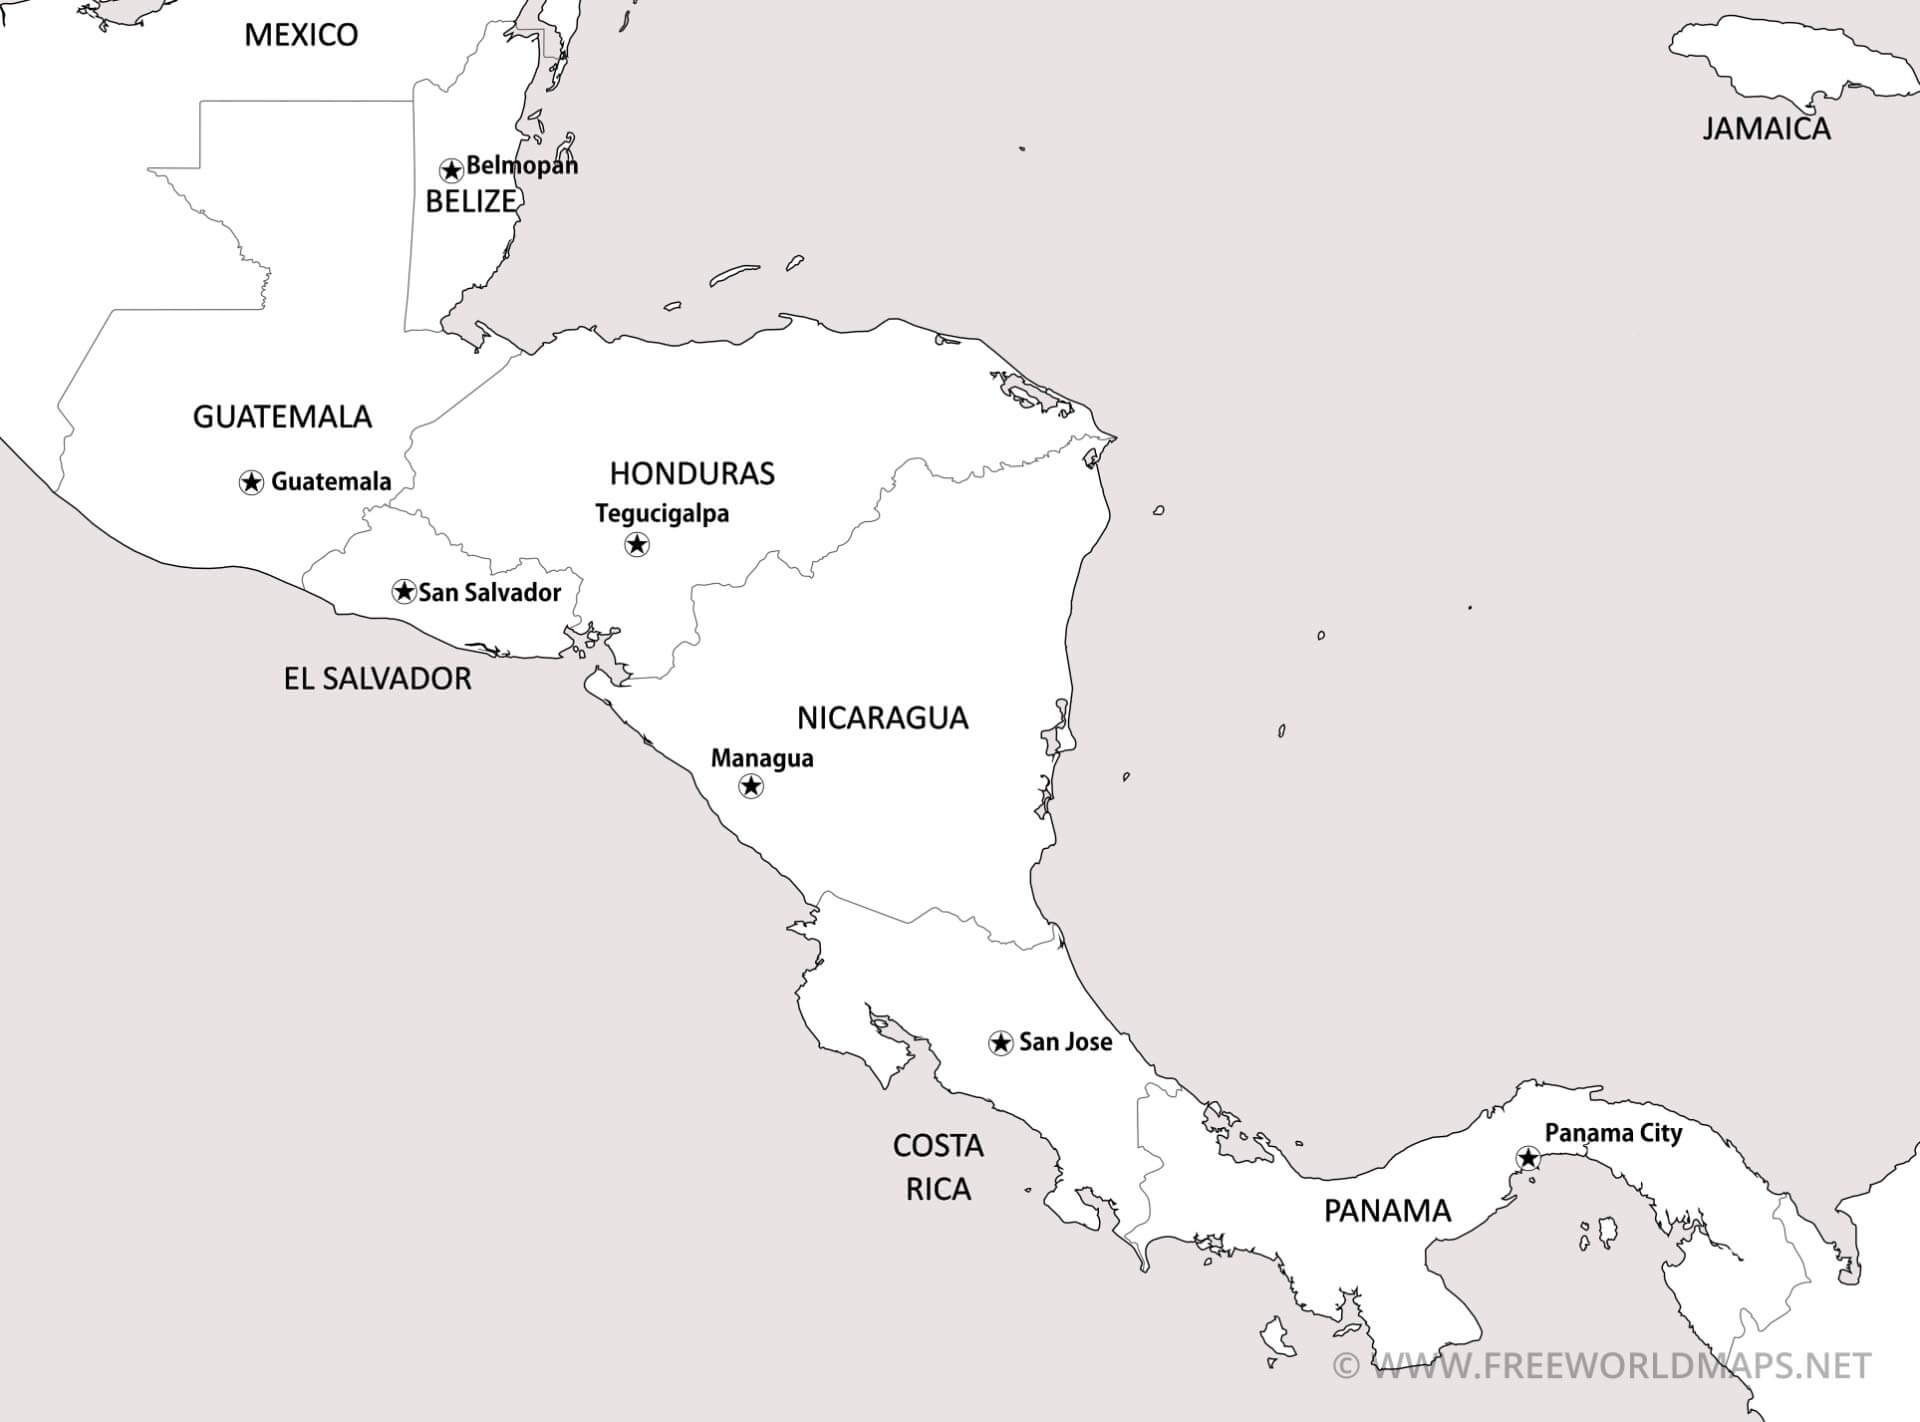 Central America printable PDF maps – Freeworldmaps.net on blank maps, uk road maps, teaching maps, outline maps, new mexico forest service maps, road maps, dynamic maps, edit and print maps, city maps, business maps, printable greeting cards, printable calendars, all maps, can i print out maps, online maps, interactive maps, satellite maps, food maps, vintage maps, u.s. regions outline maps, travel maps, large print road maps, love maps, digital maps, math maps, fire risk assessment maps, old maps, fun maps,